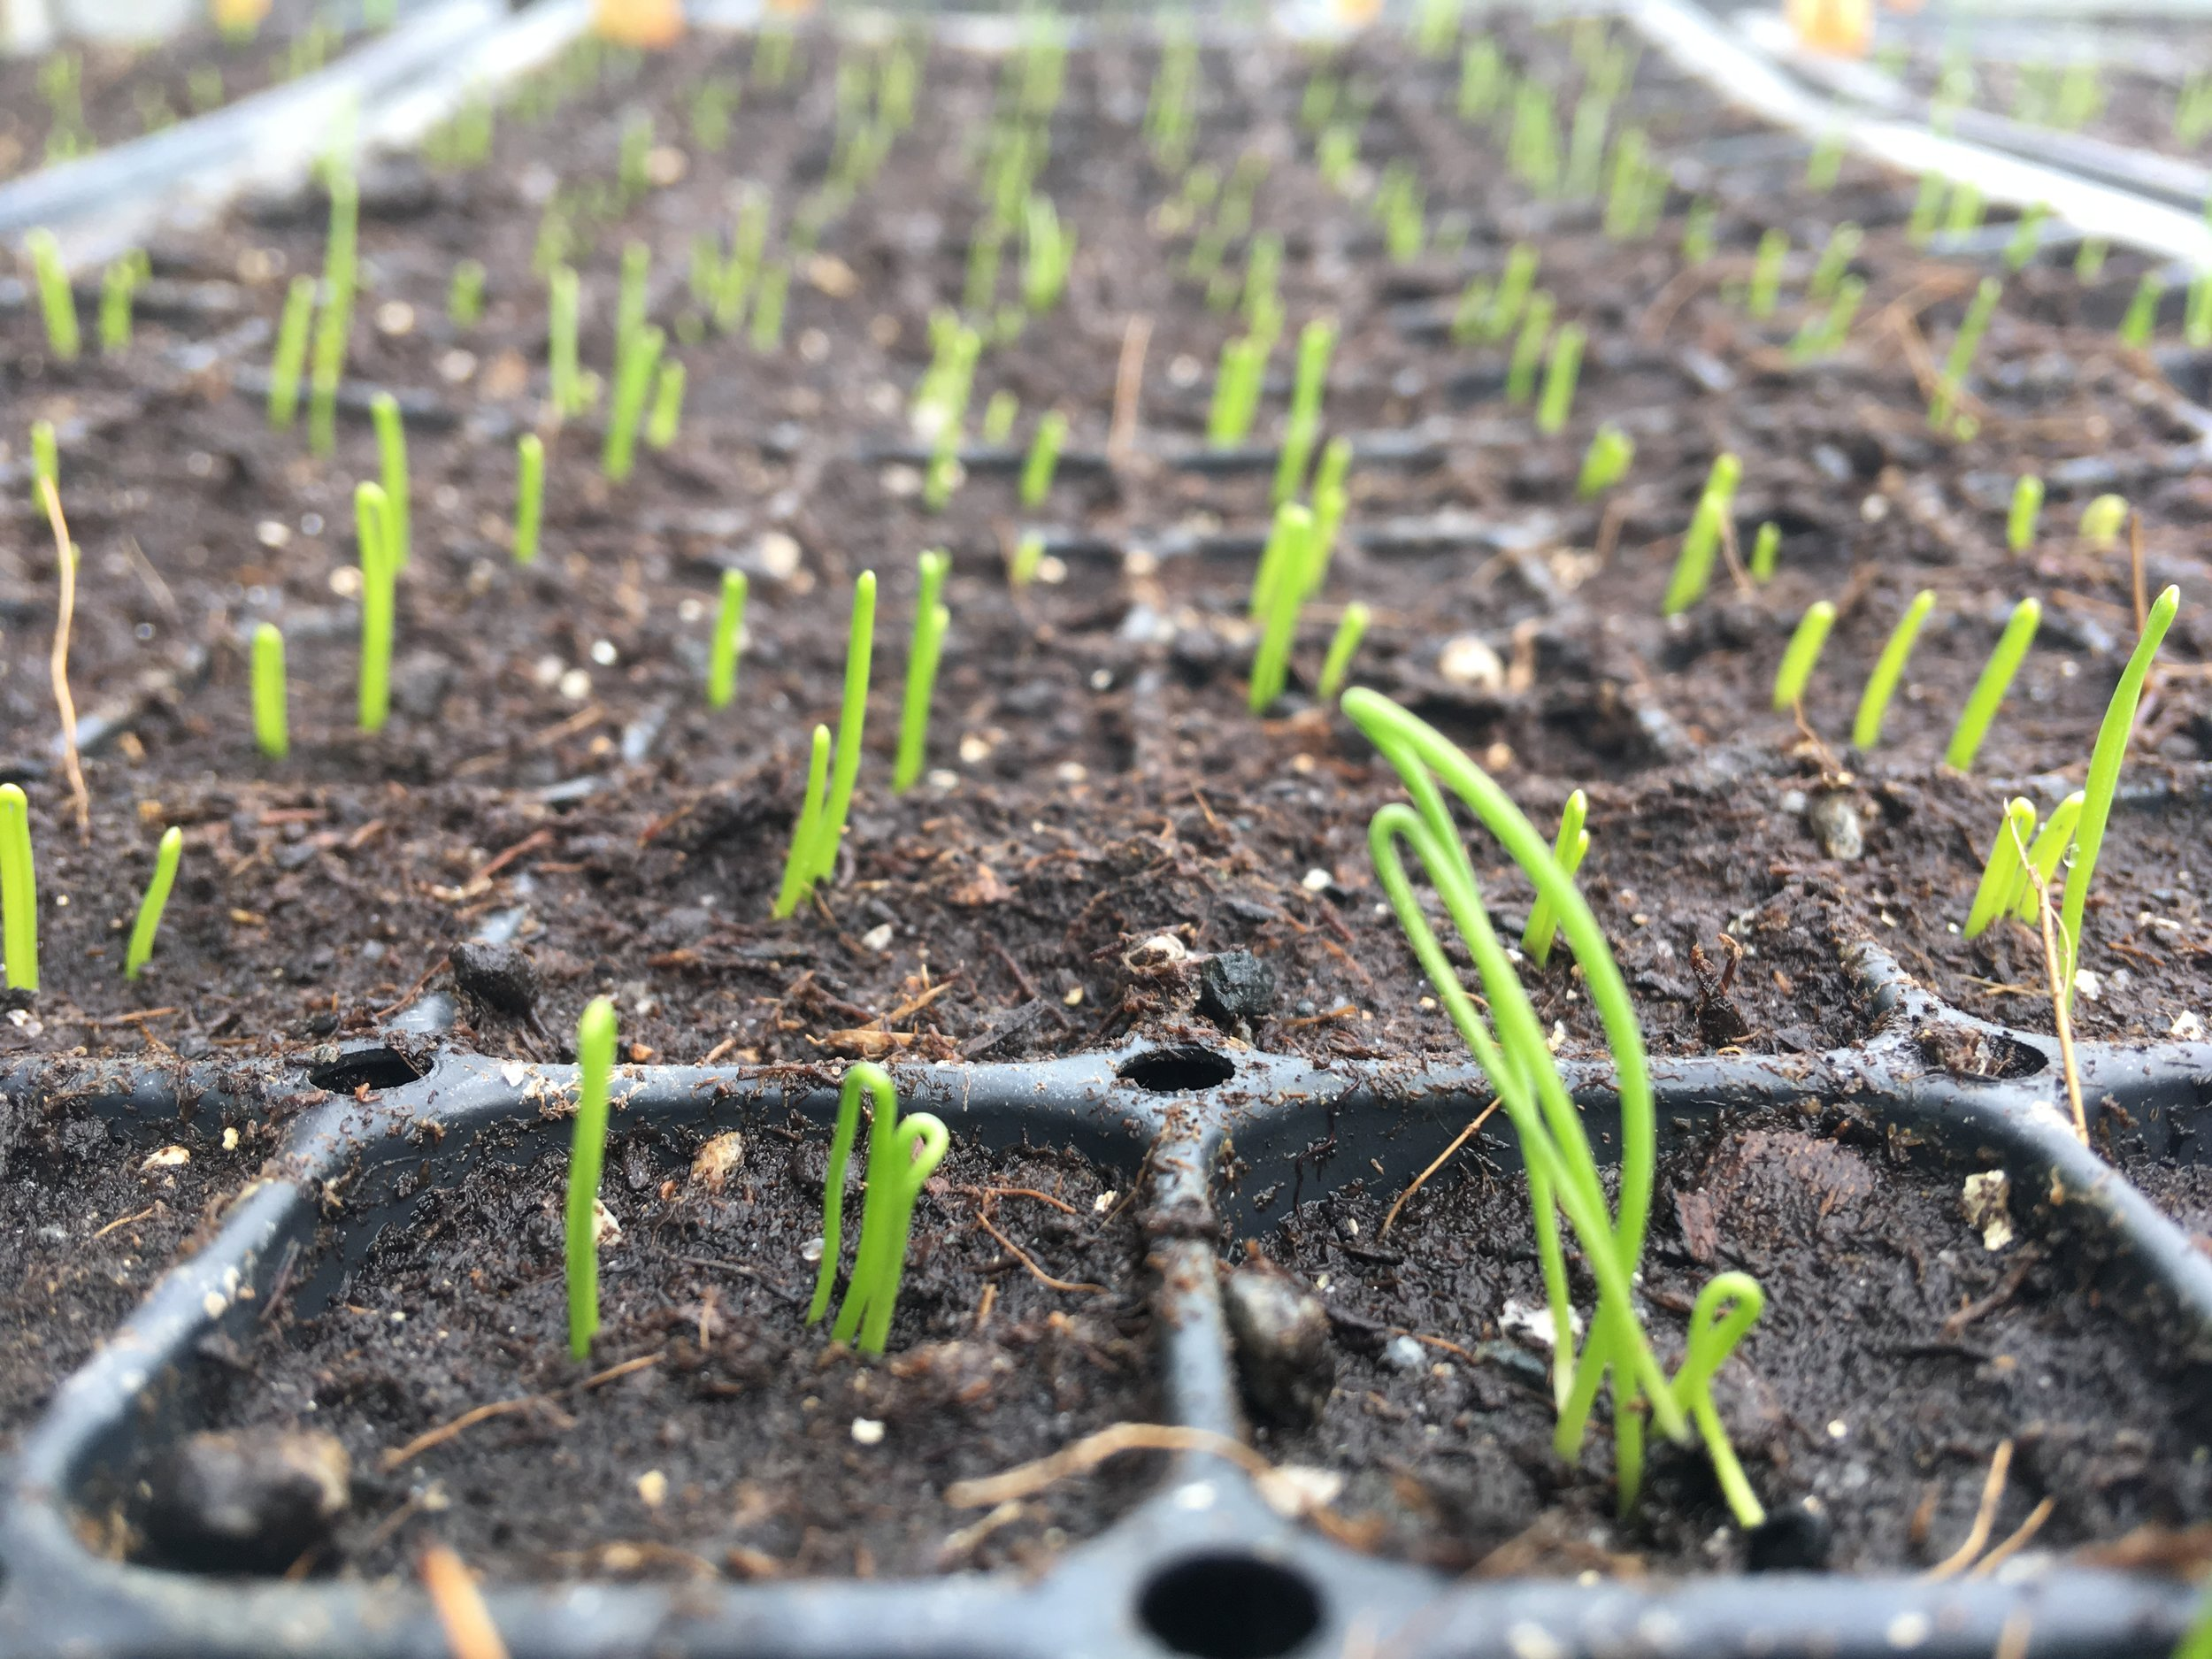 Scallions shoots popping up in the greenhouse.